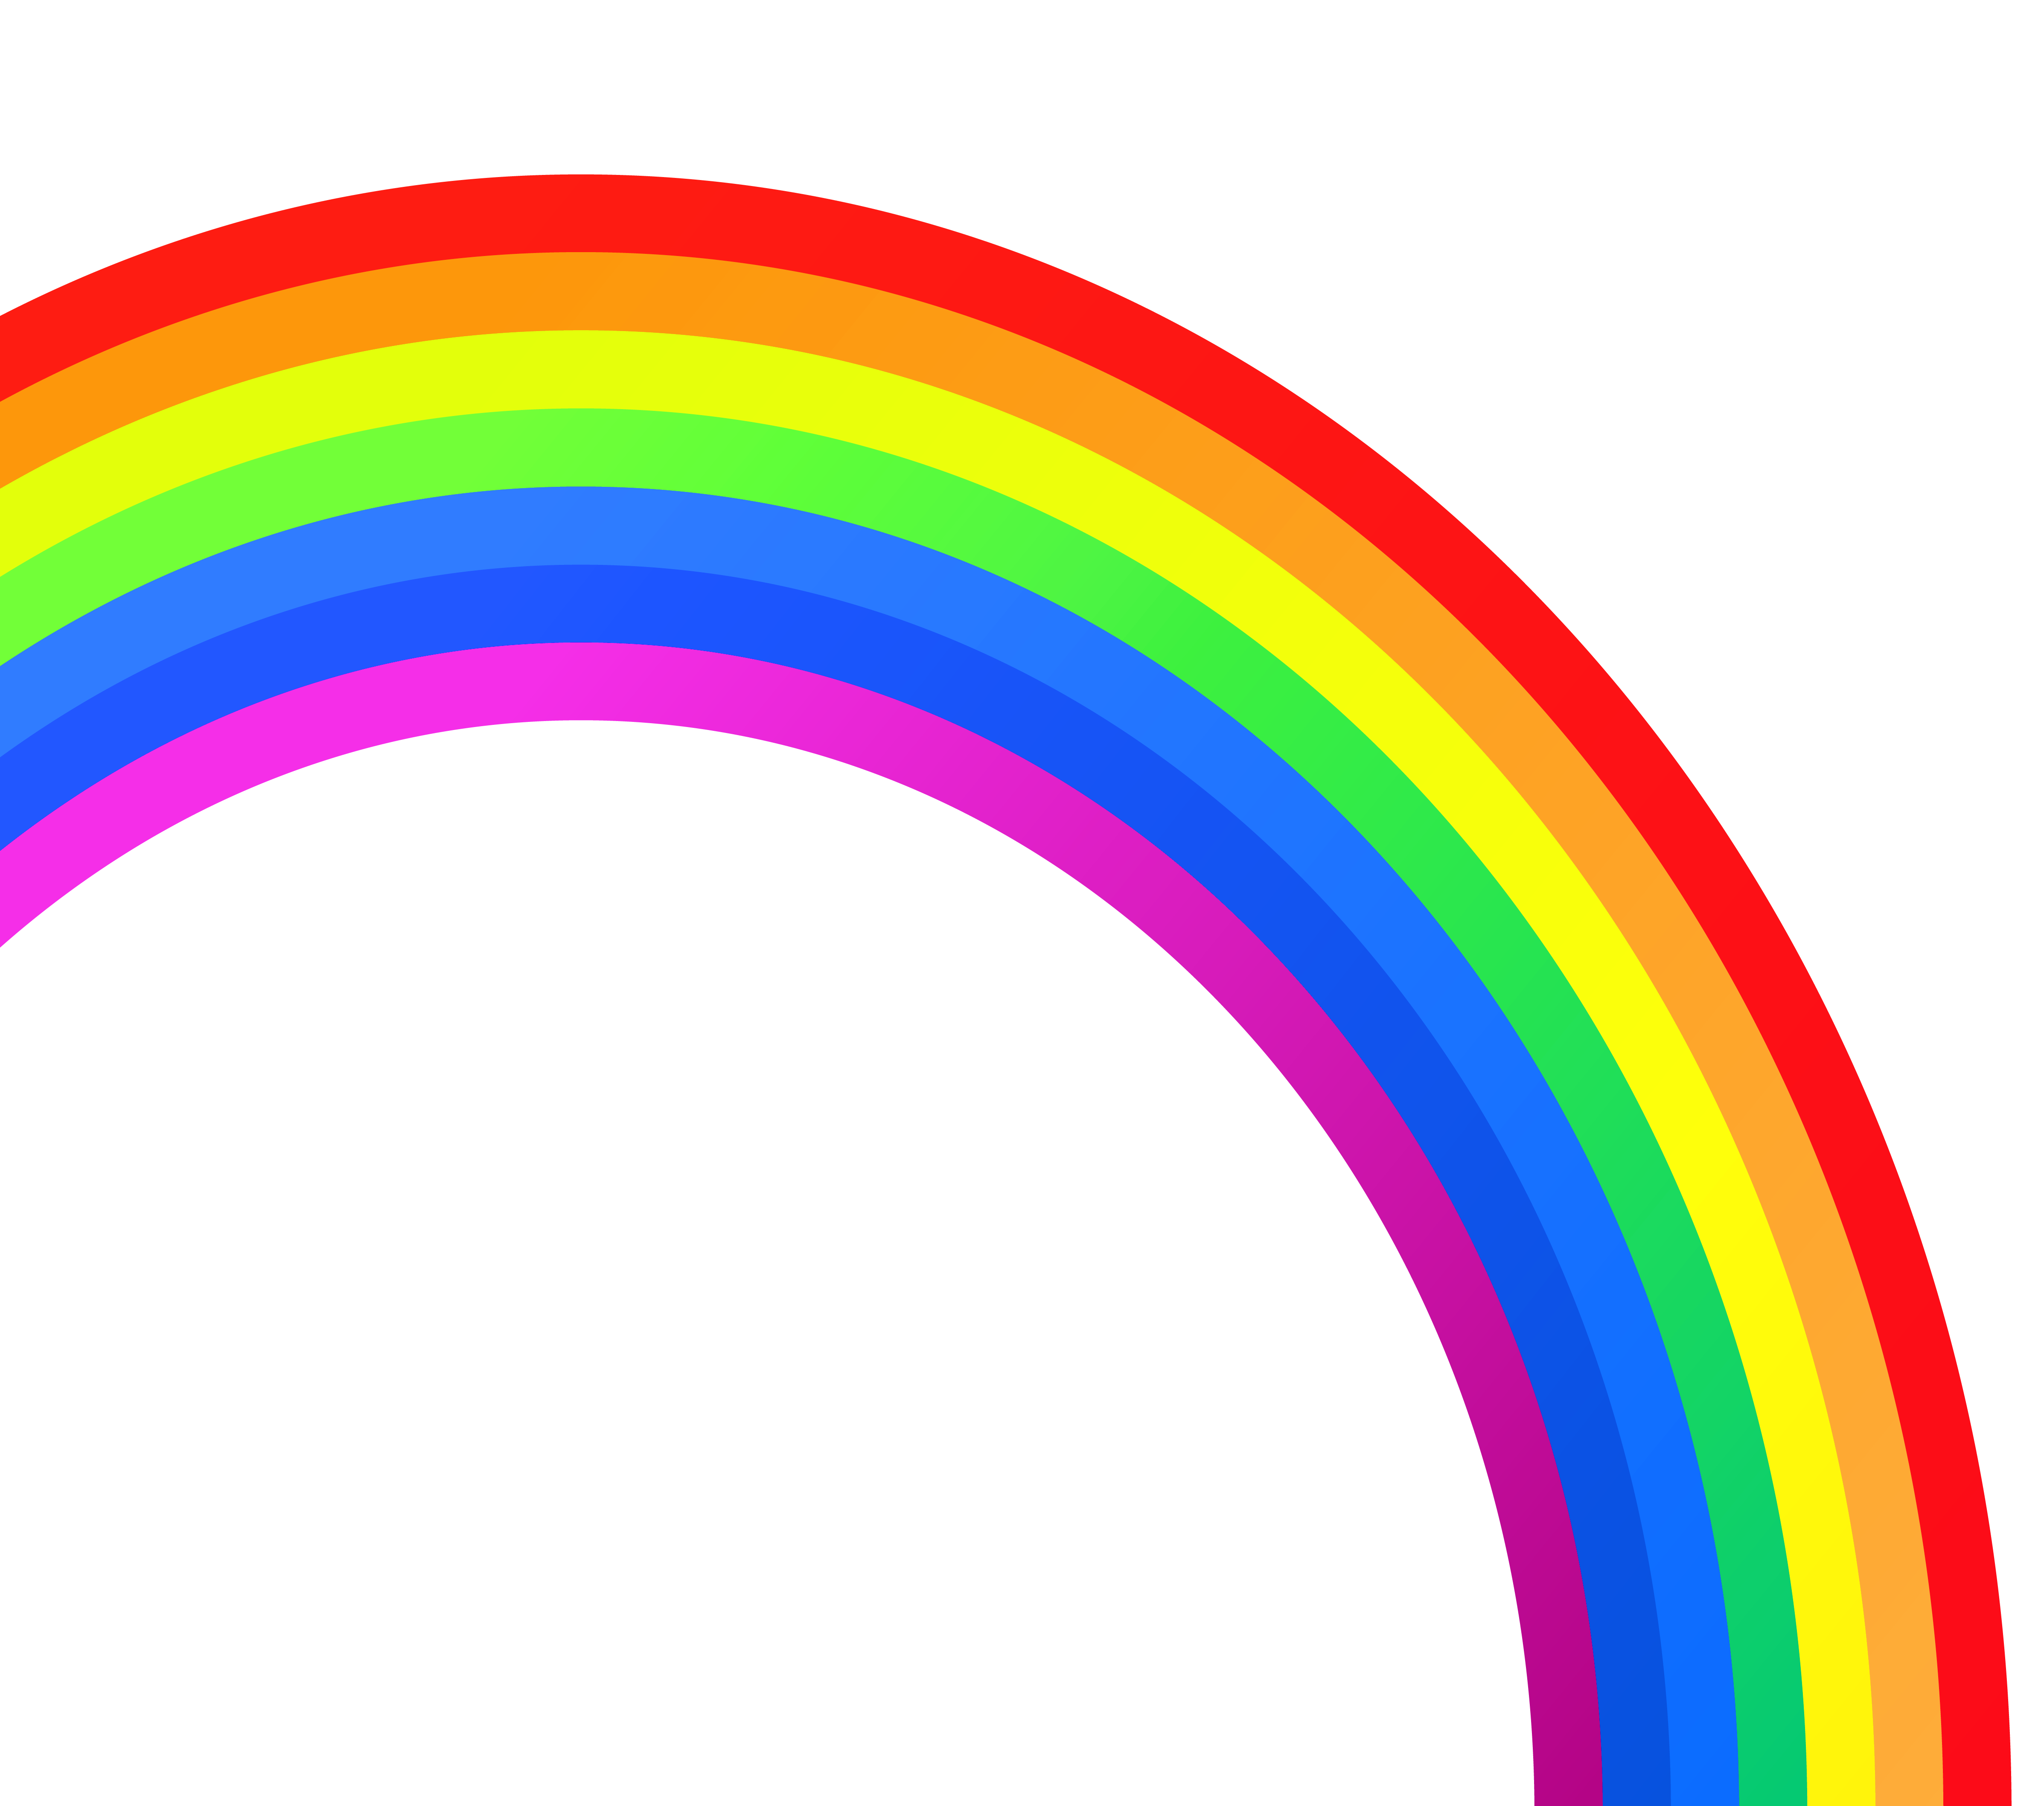 4790x4233 Rainbow Clipart Pictureu200b Gallery Yopriceville